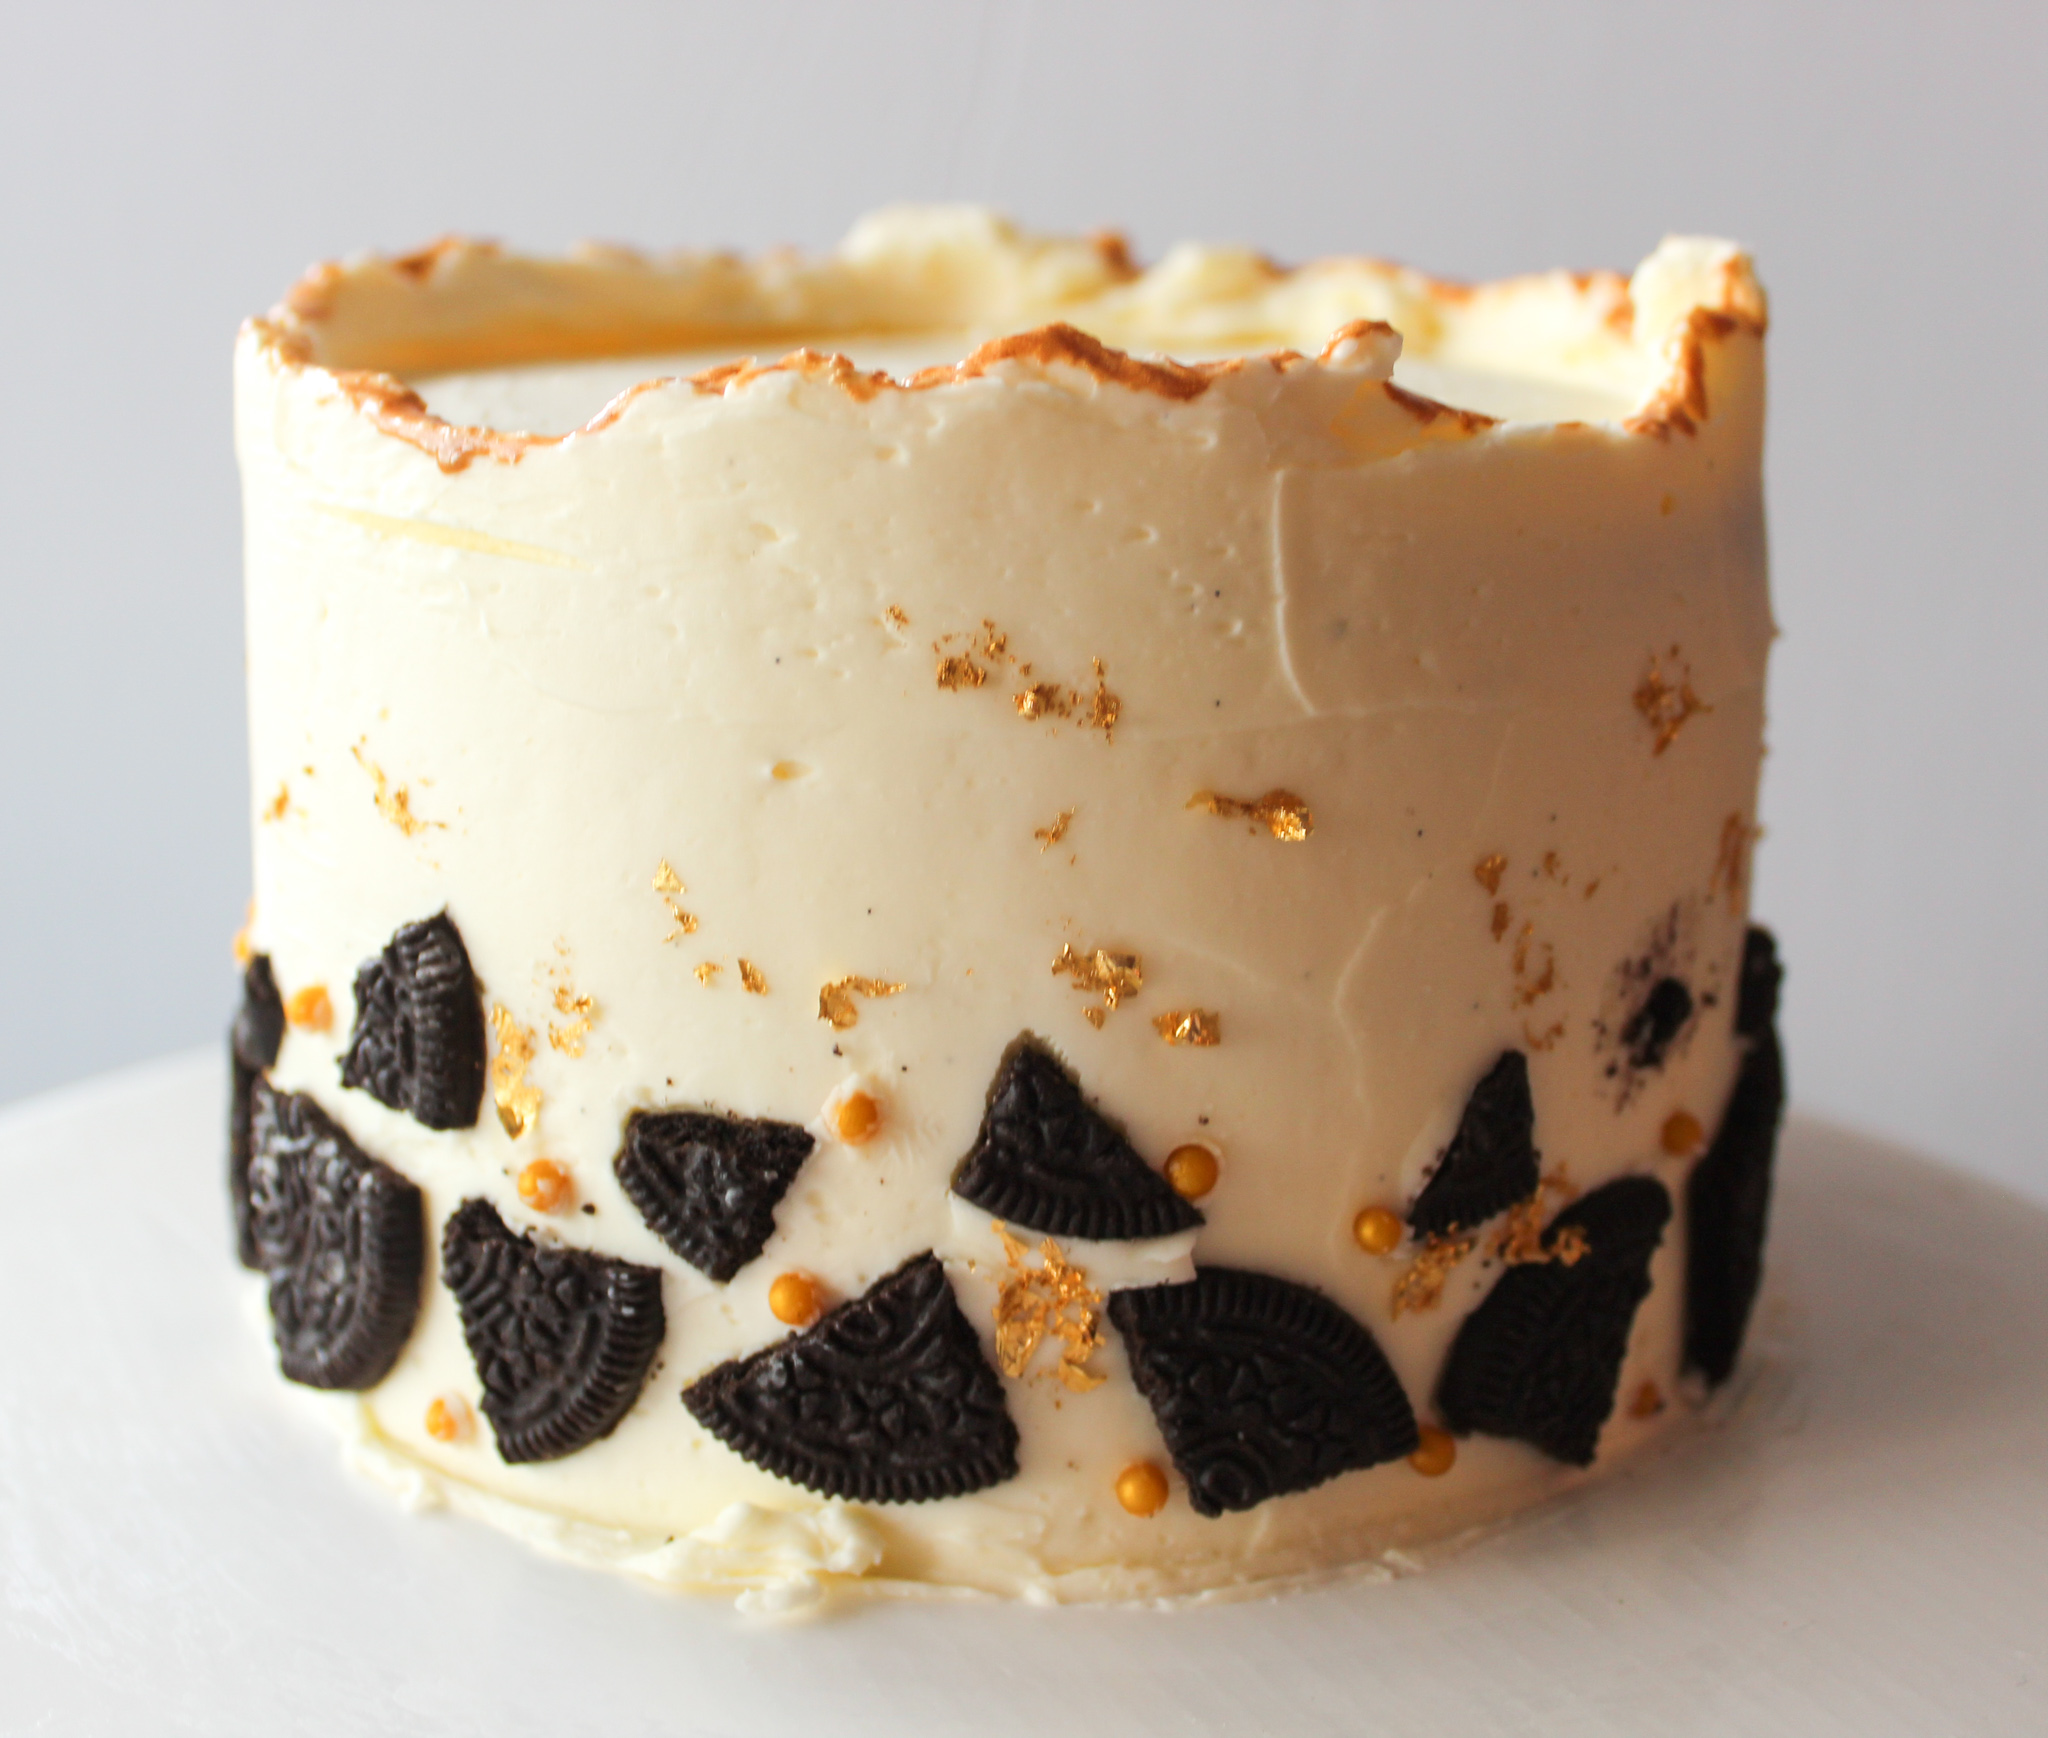 Cake Details: A Minimalist Oreo and Gold Cake